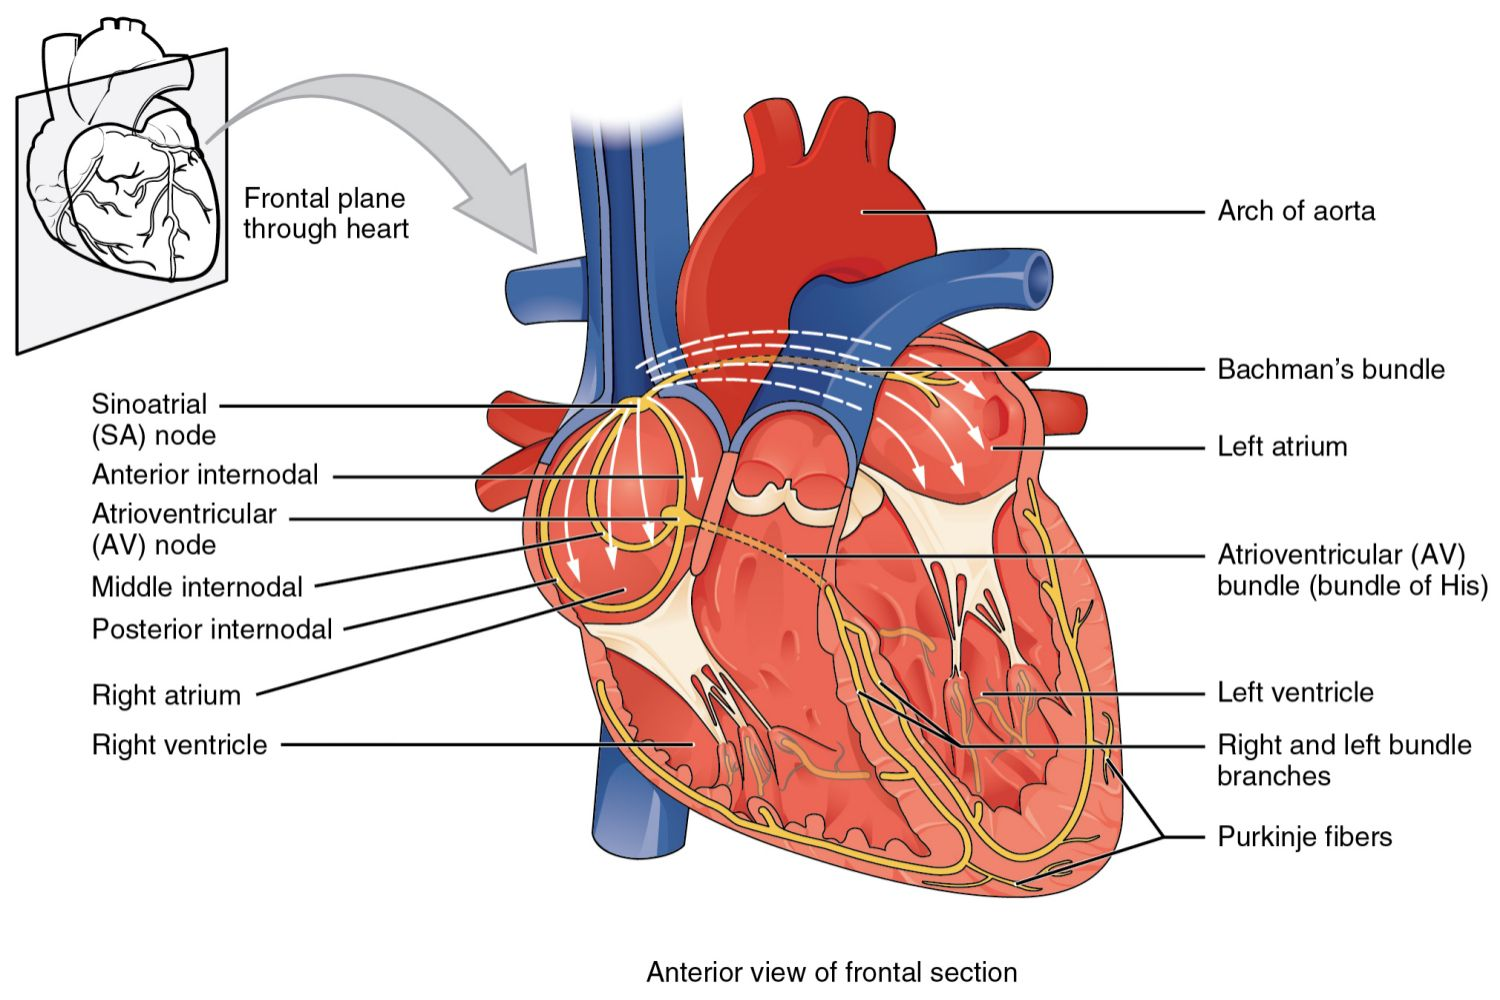 Anatomy of the heart diagram view av and sa nodes electrical system of the heart pooptronica